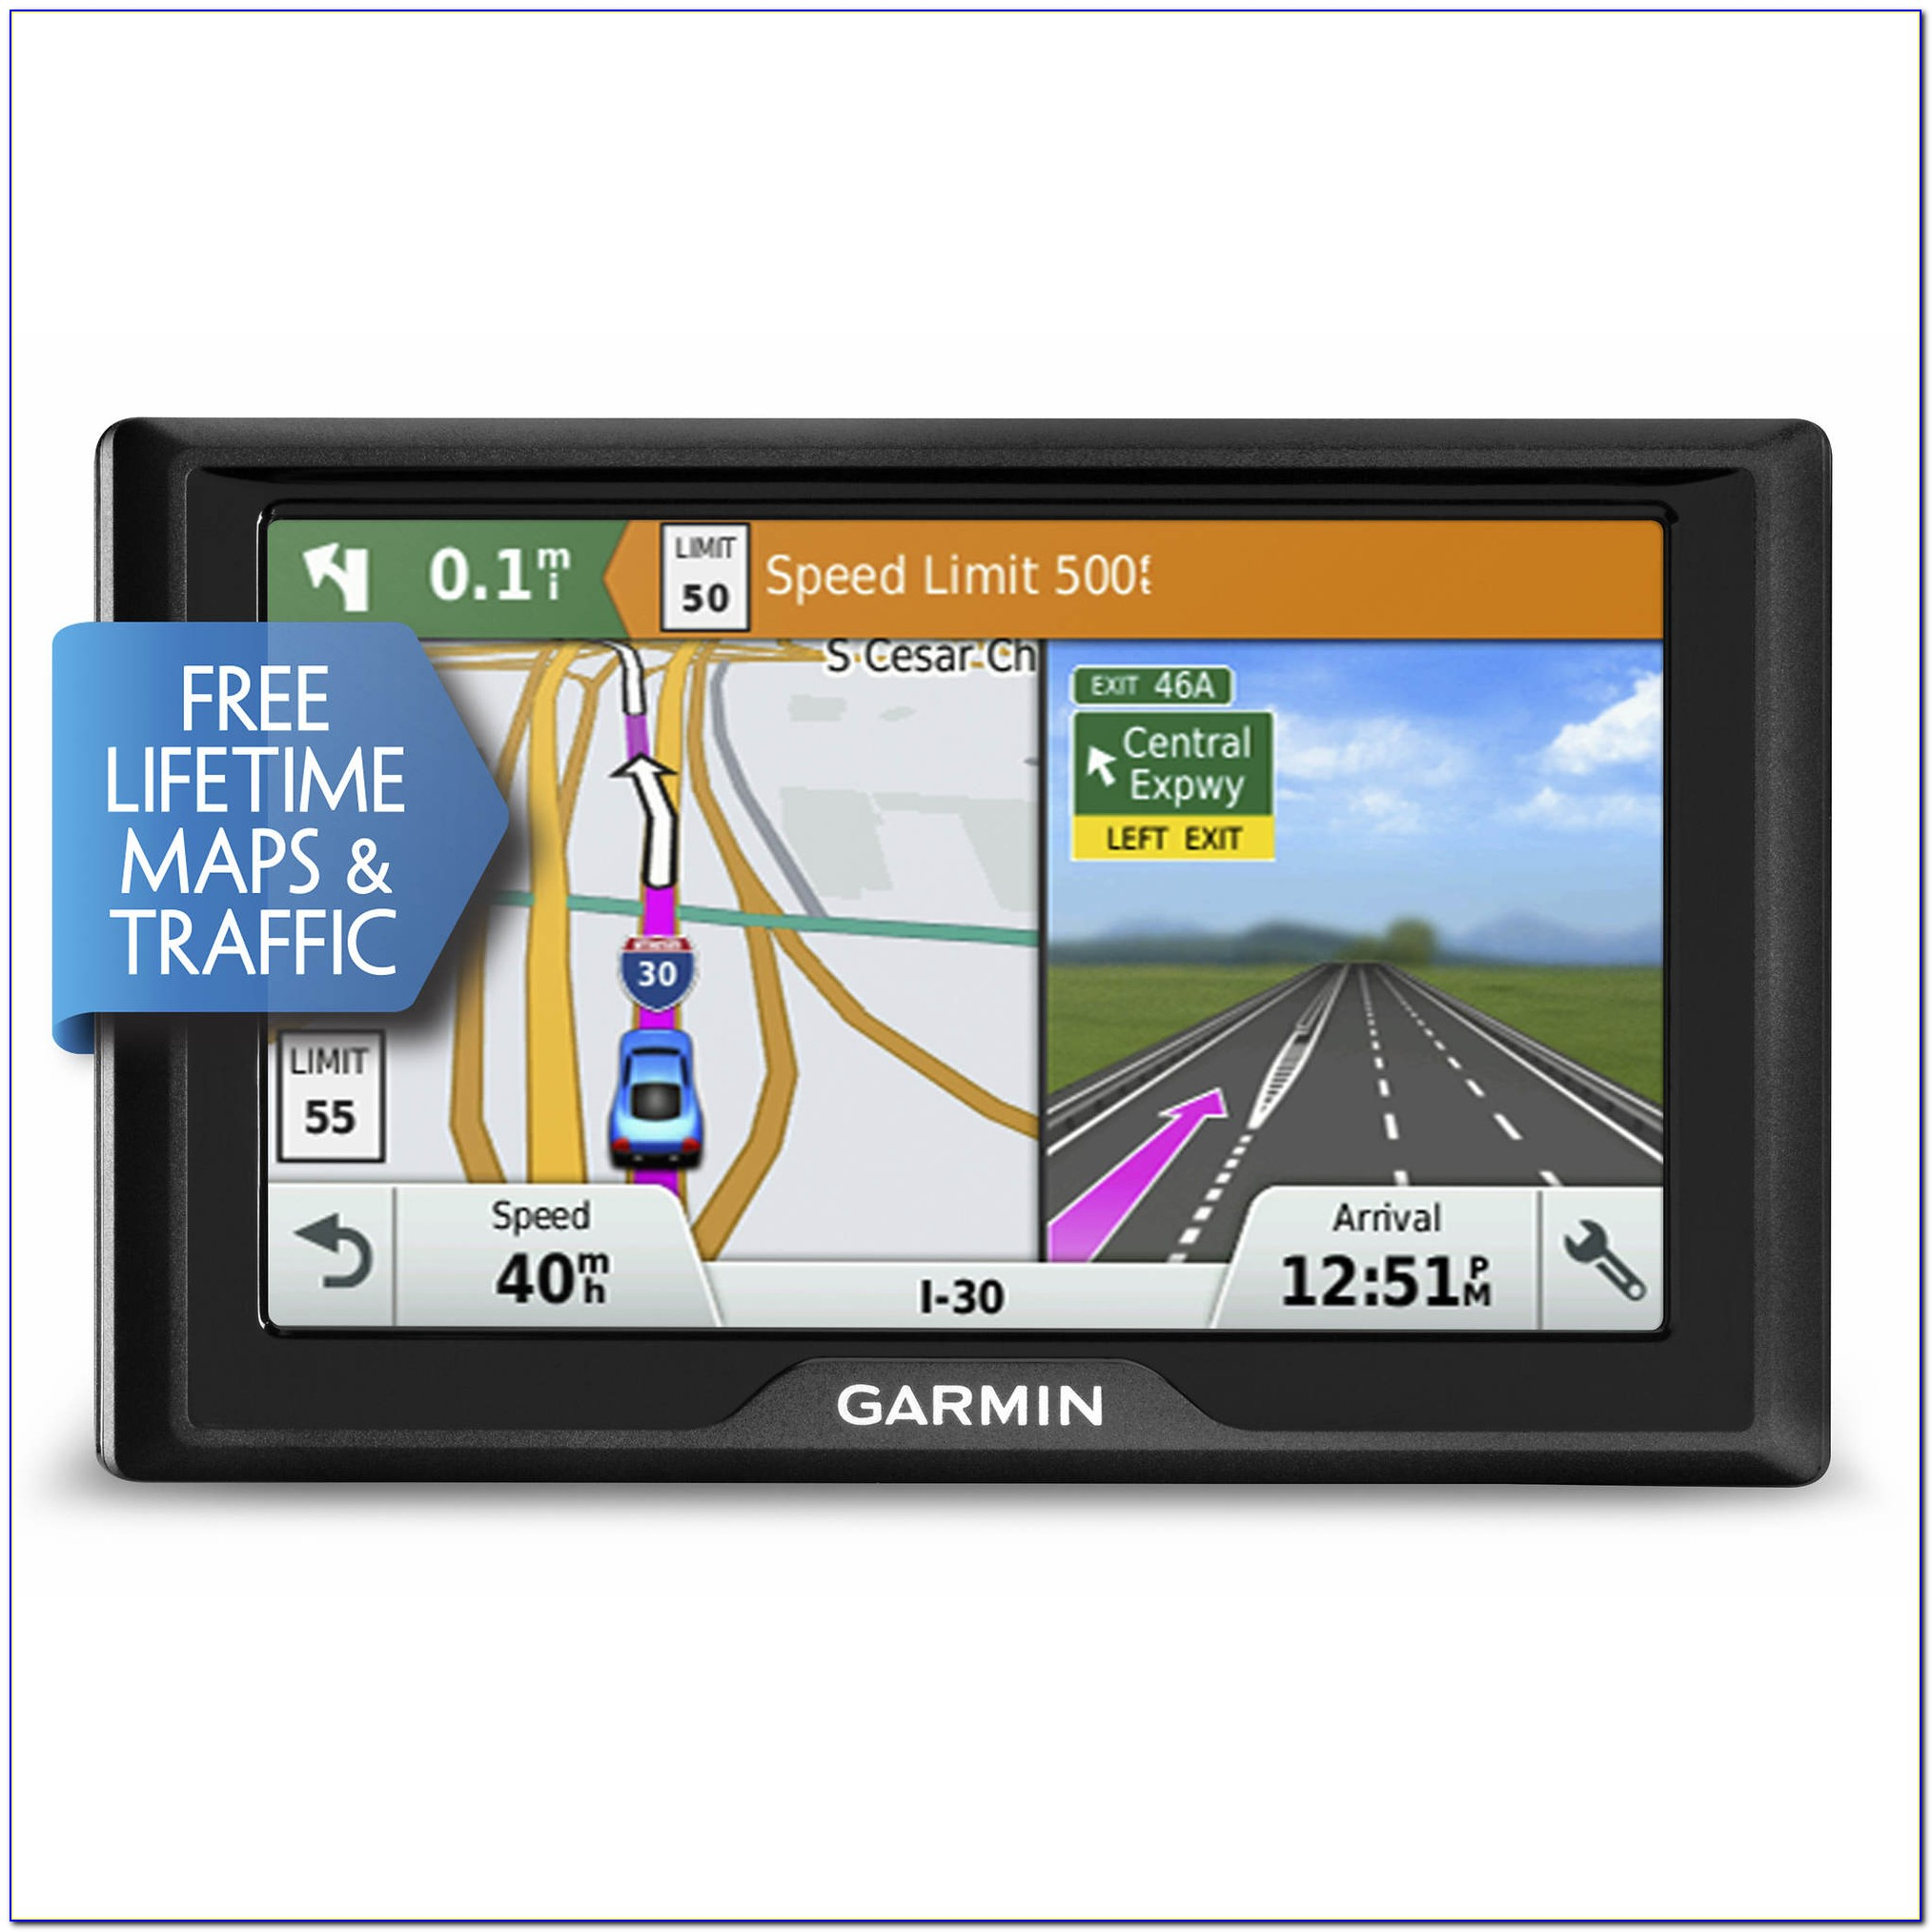 Garmin 5 Gps With Voice Command Lifetime Maps And Traffic